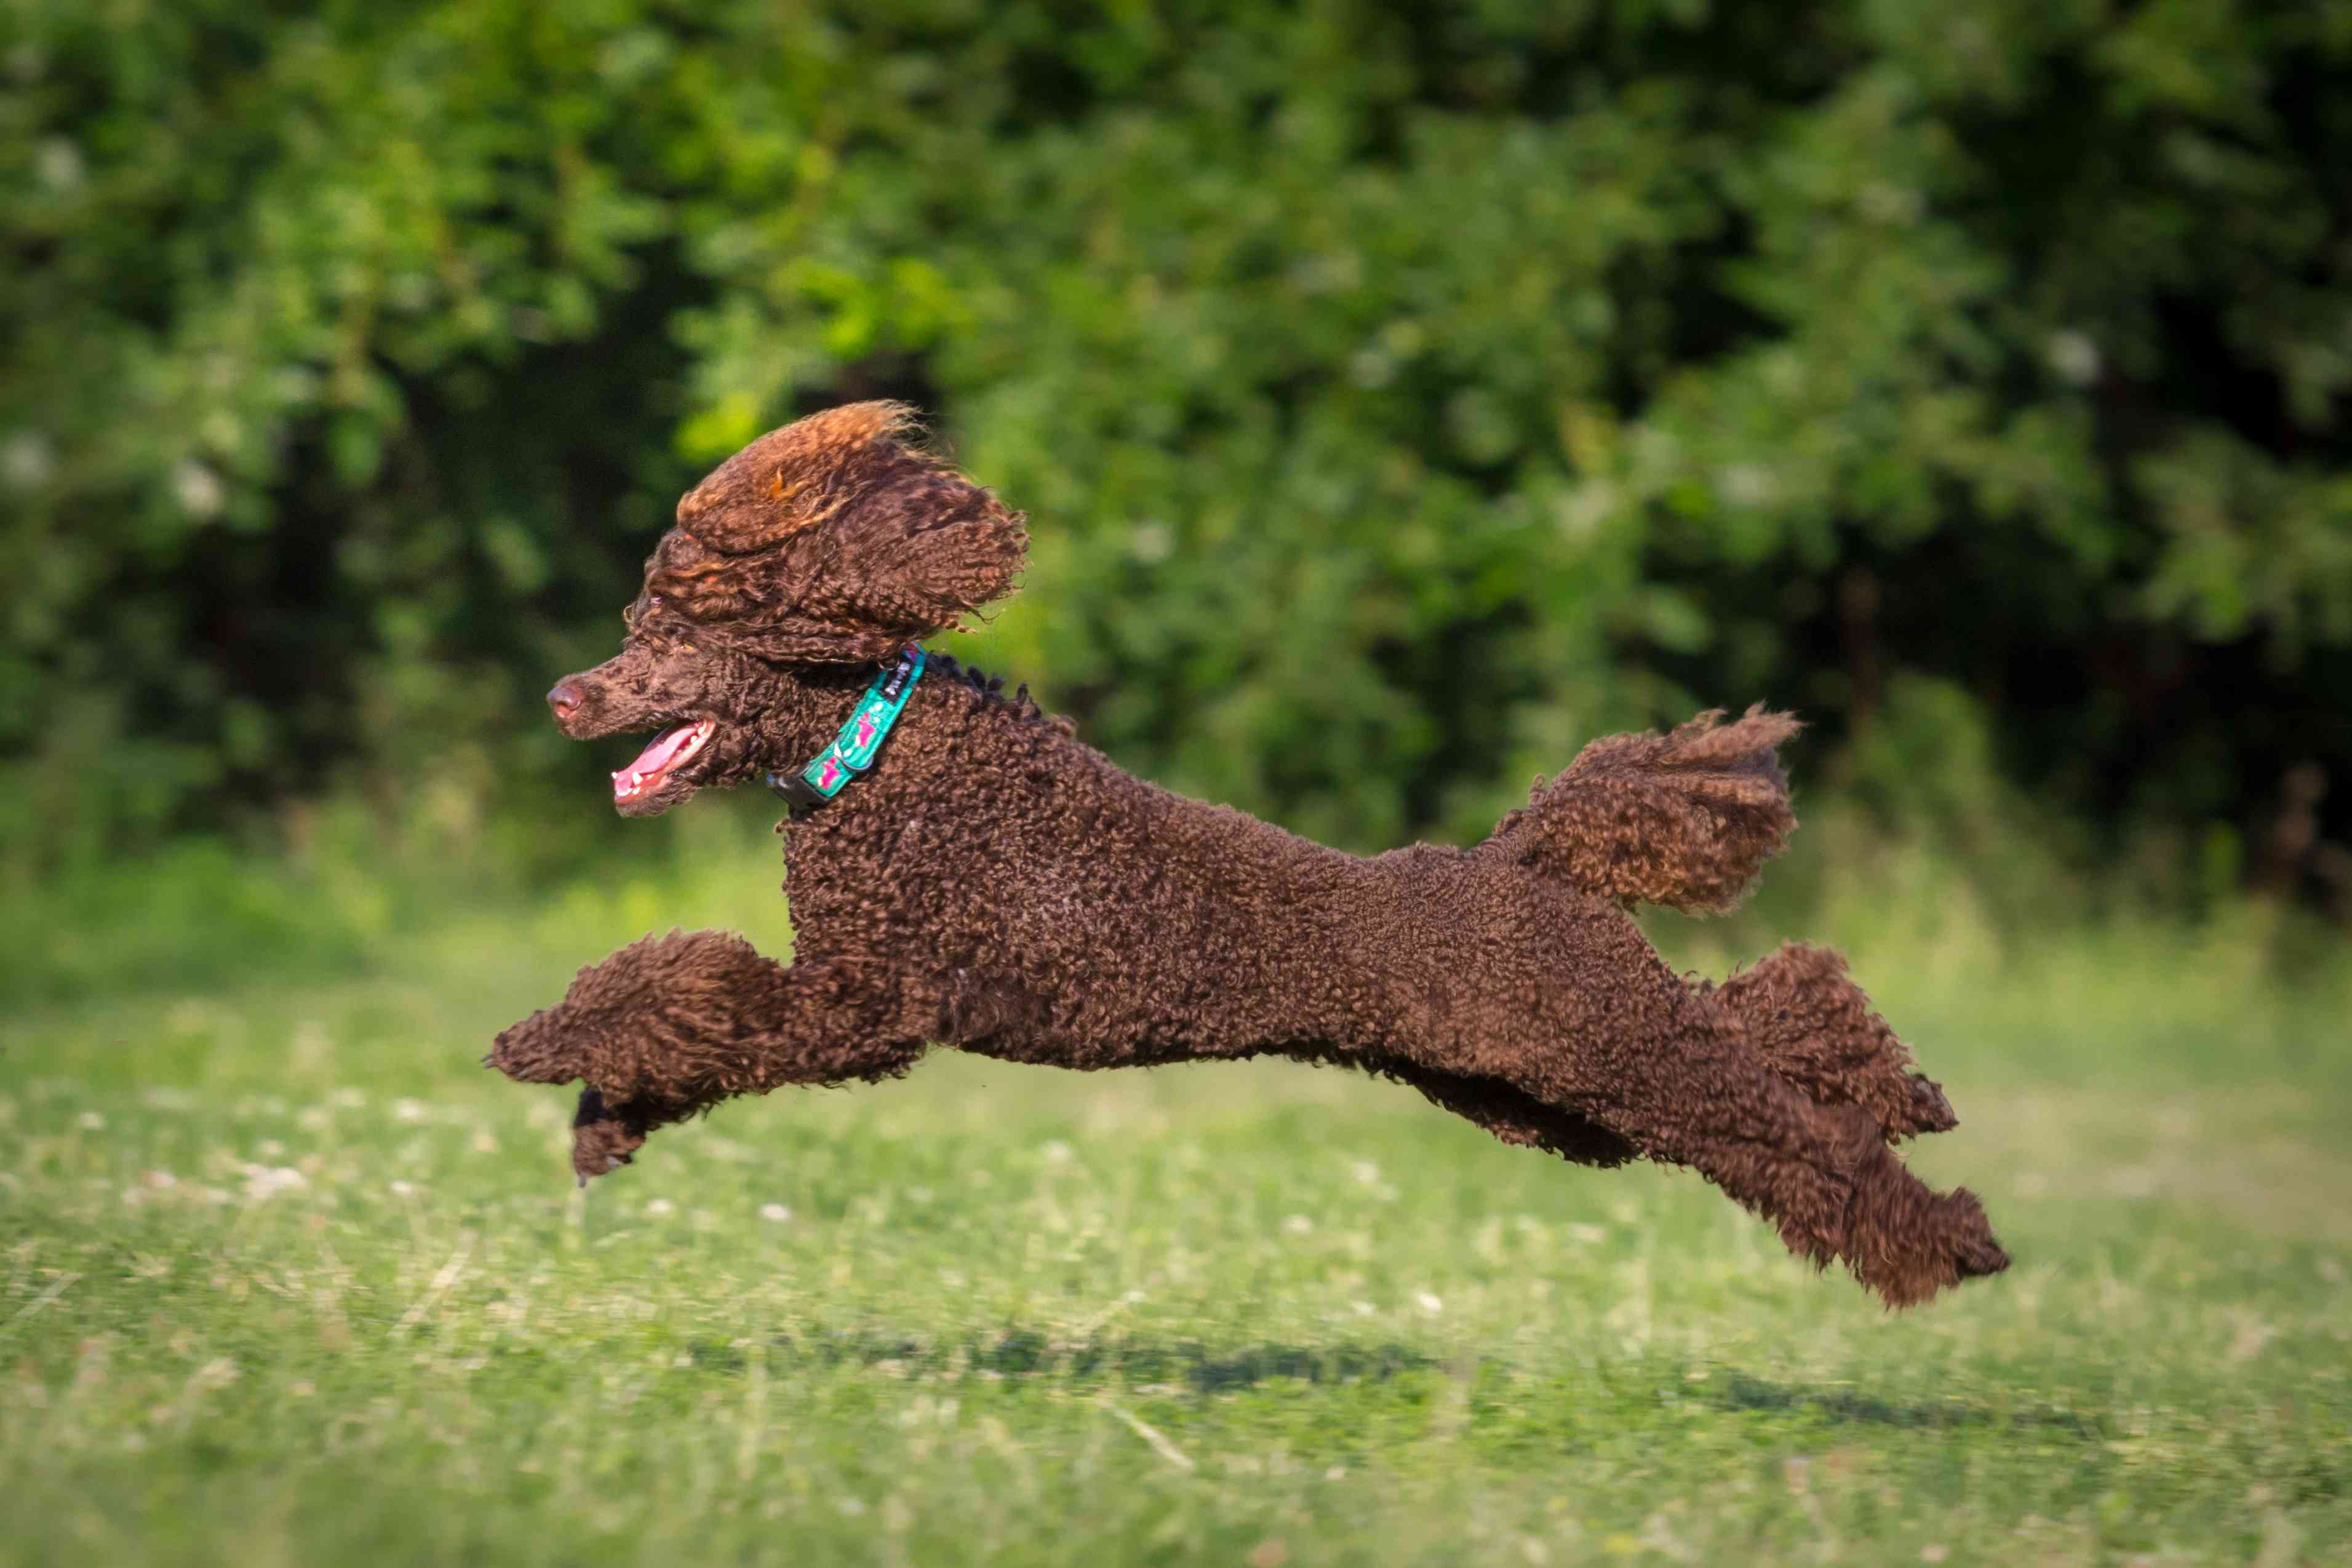 Brown poodle running on grass